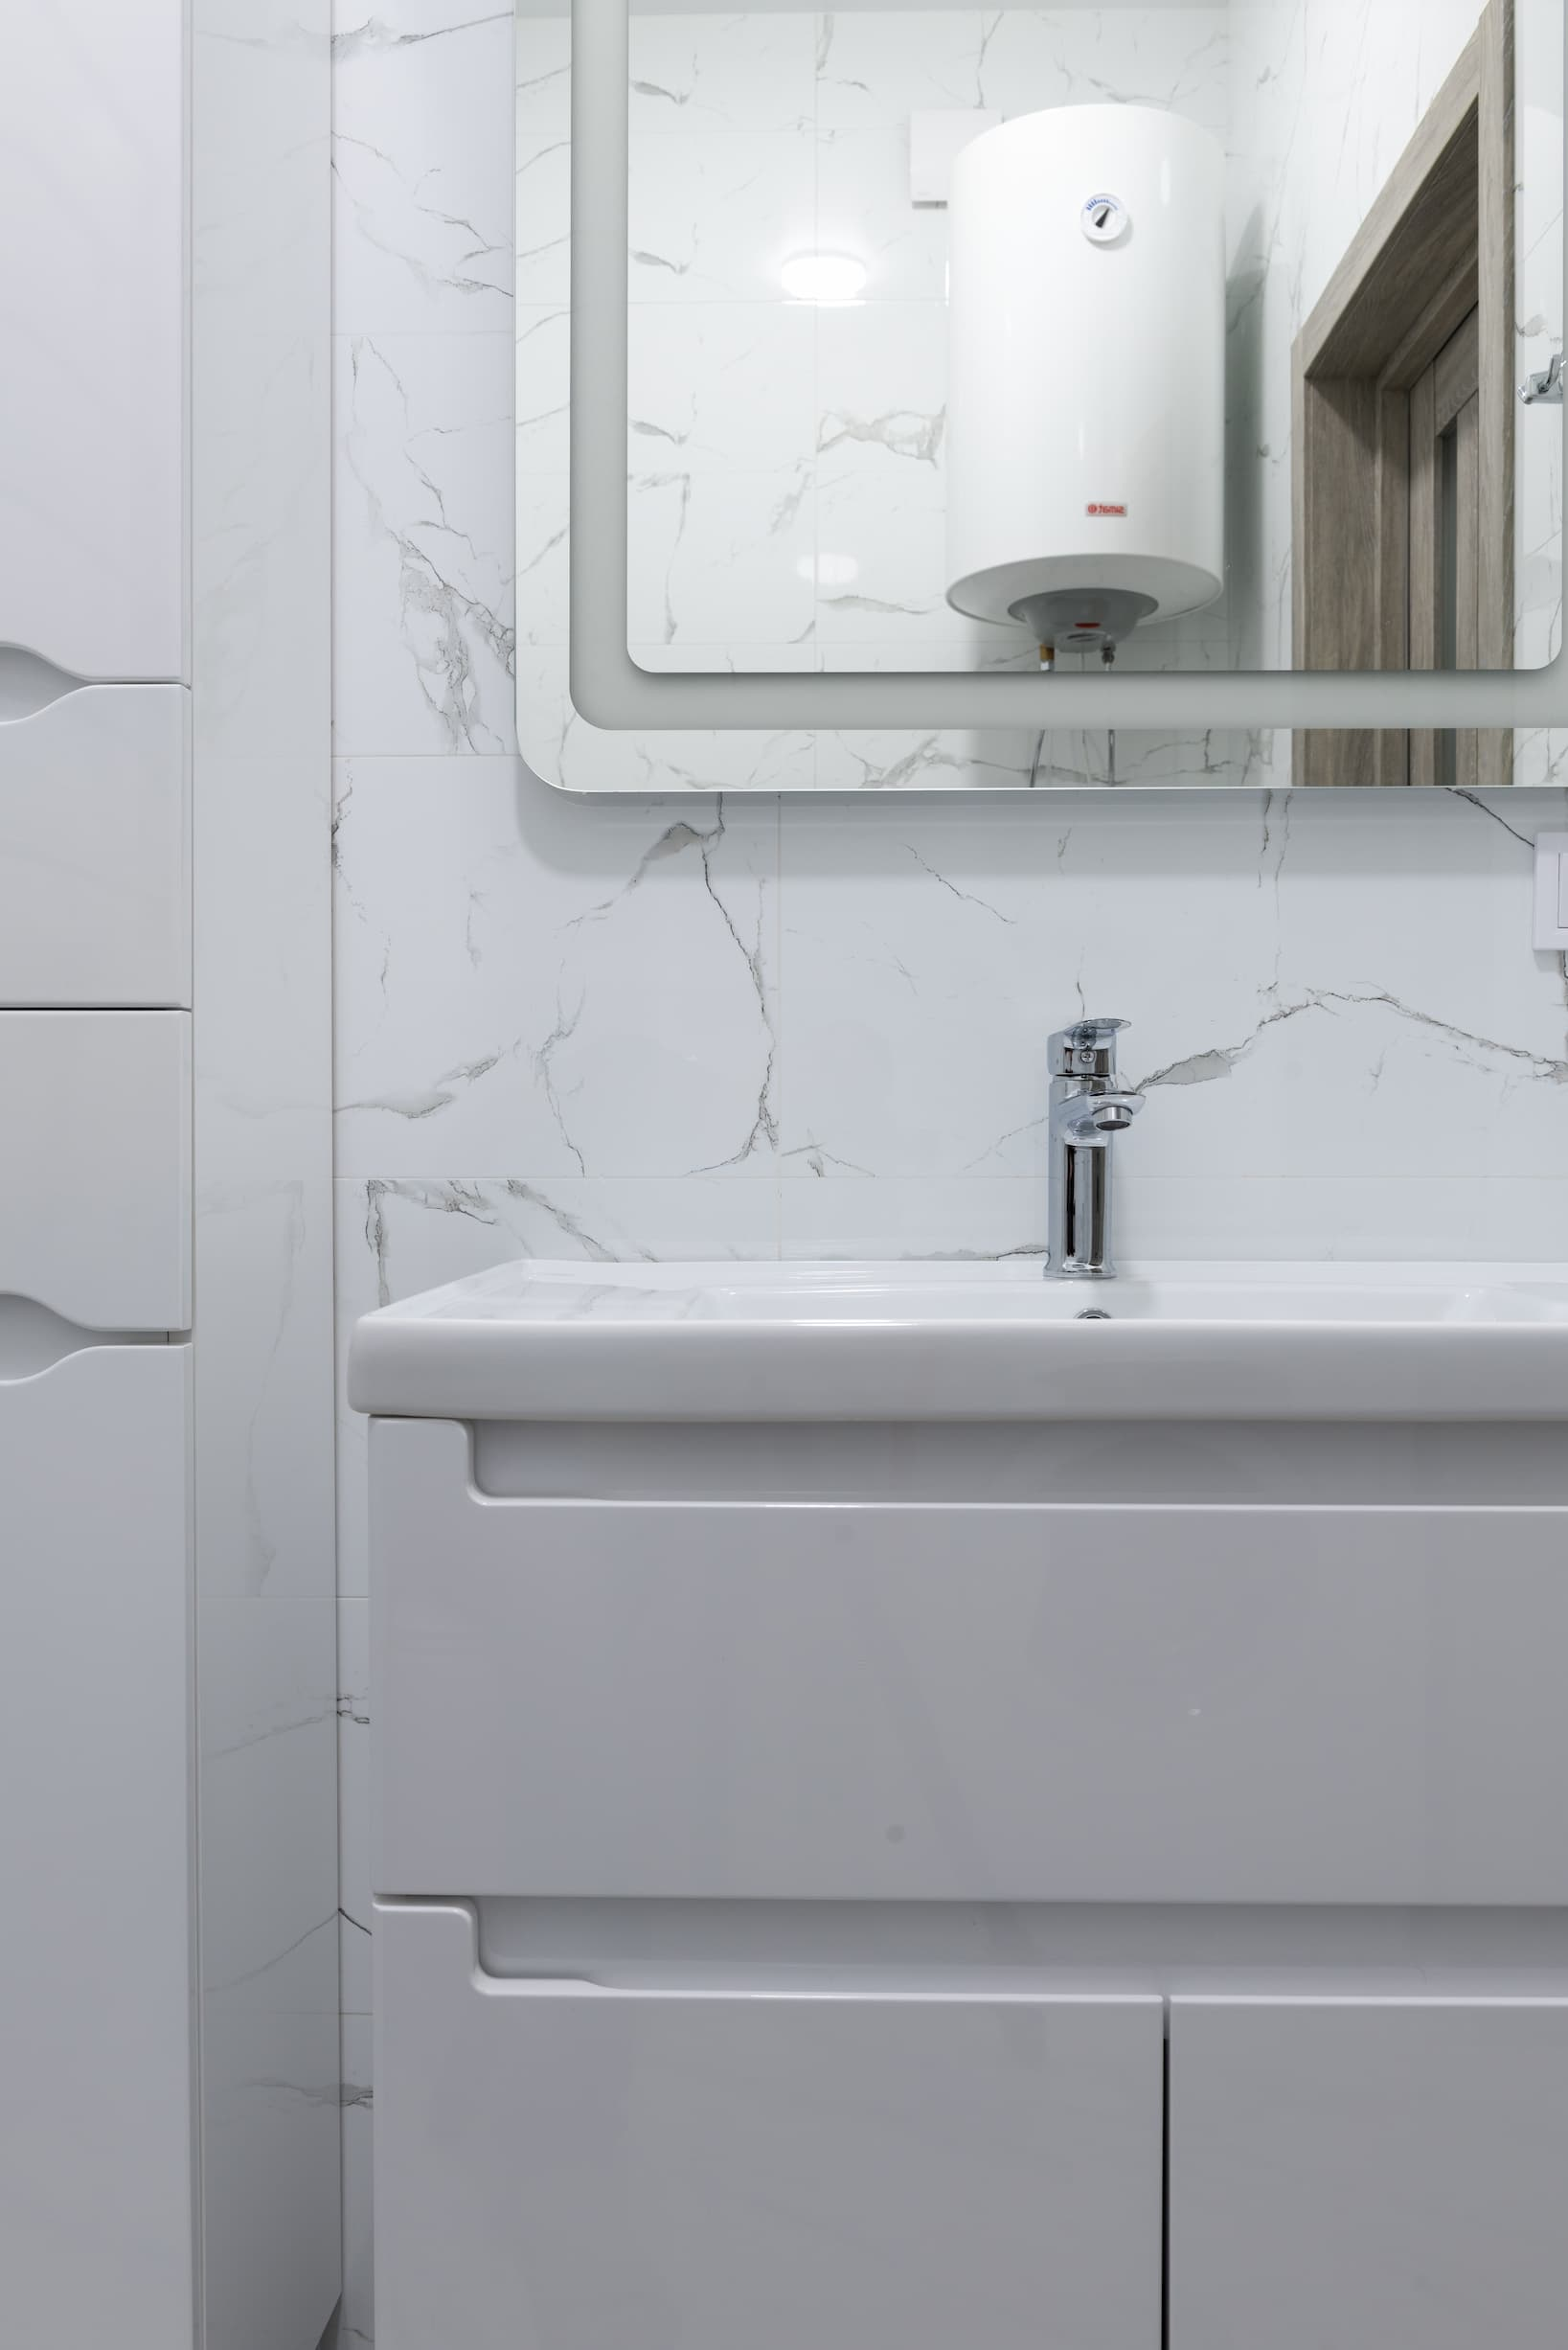 White hot water tank shown in the mirror reflection